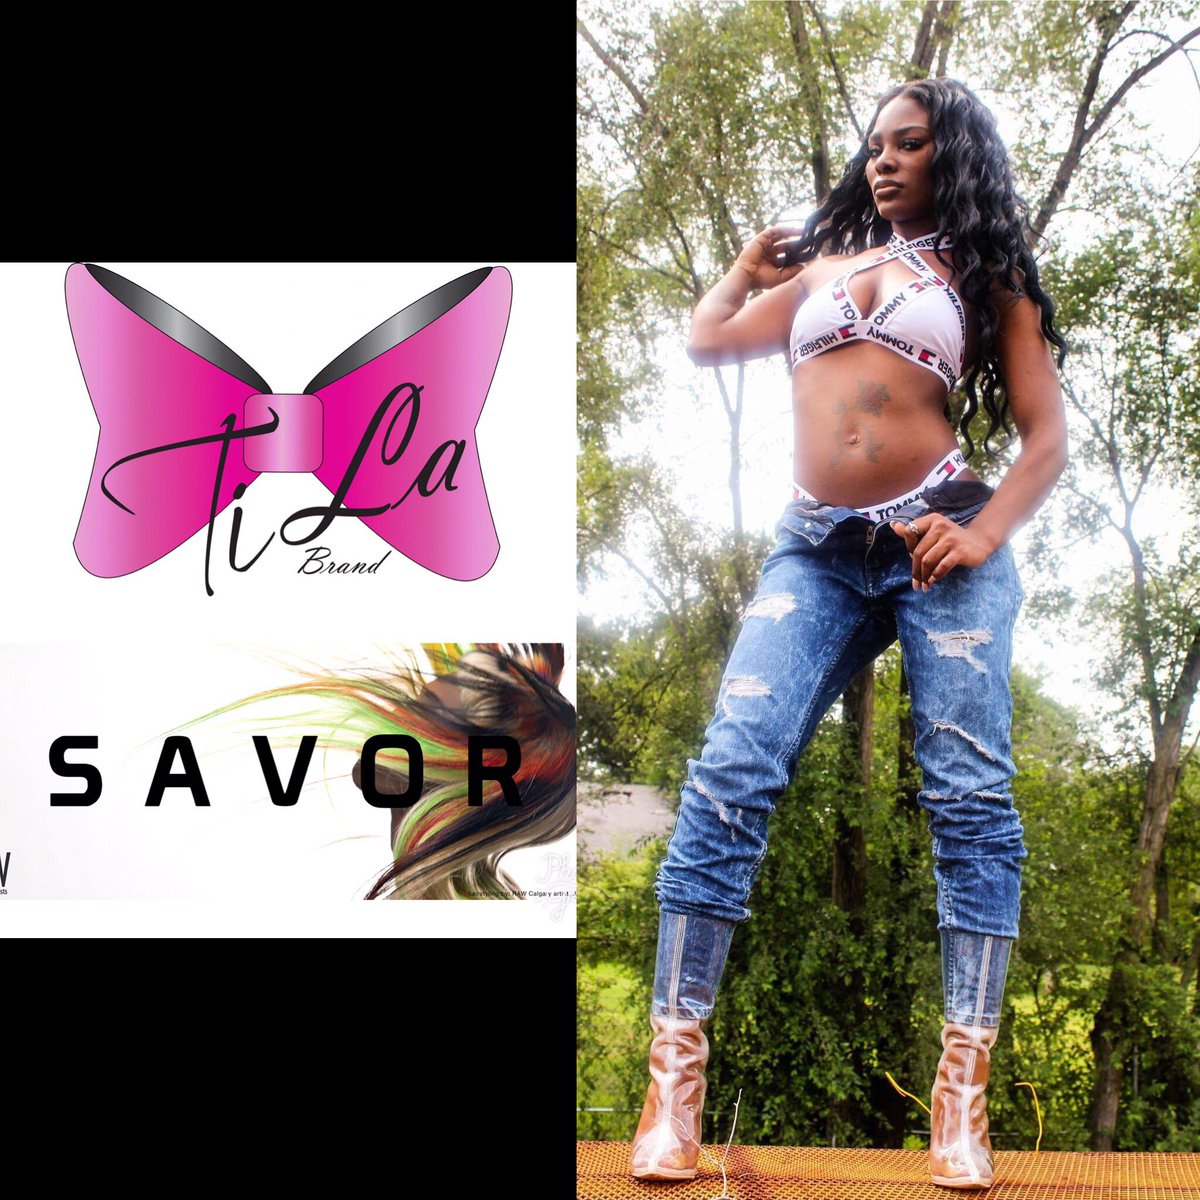 Be on the look out #fashion #stylish #model #dress #shoes #heels #styles #outfit #glam #chicagomodel   http://www. rawartists.org/tilabrand  &nbsp;   Ti&#39;La Brand<br>http://pic.twitter.com/bYqYrKSe1U